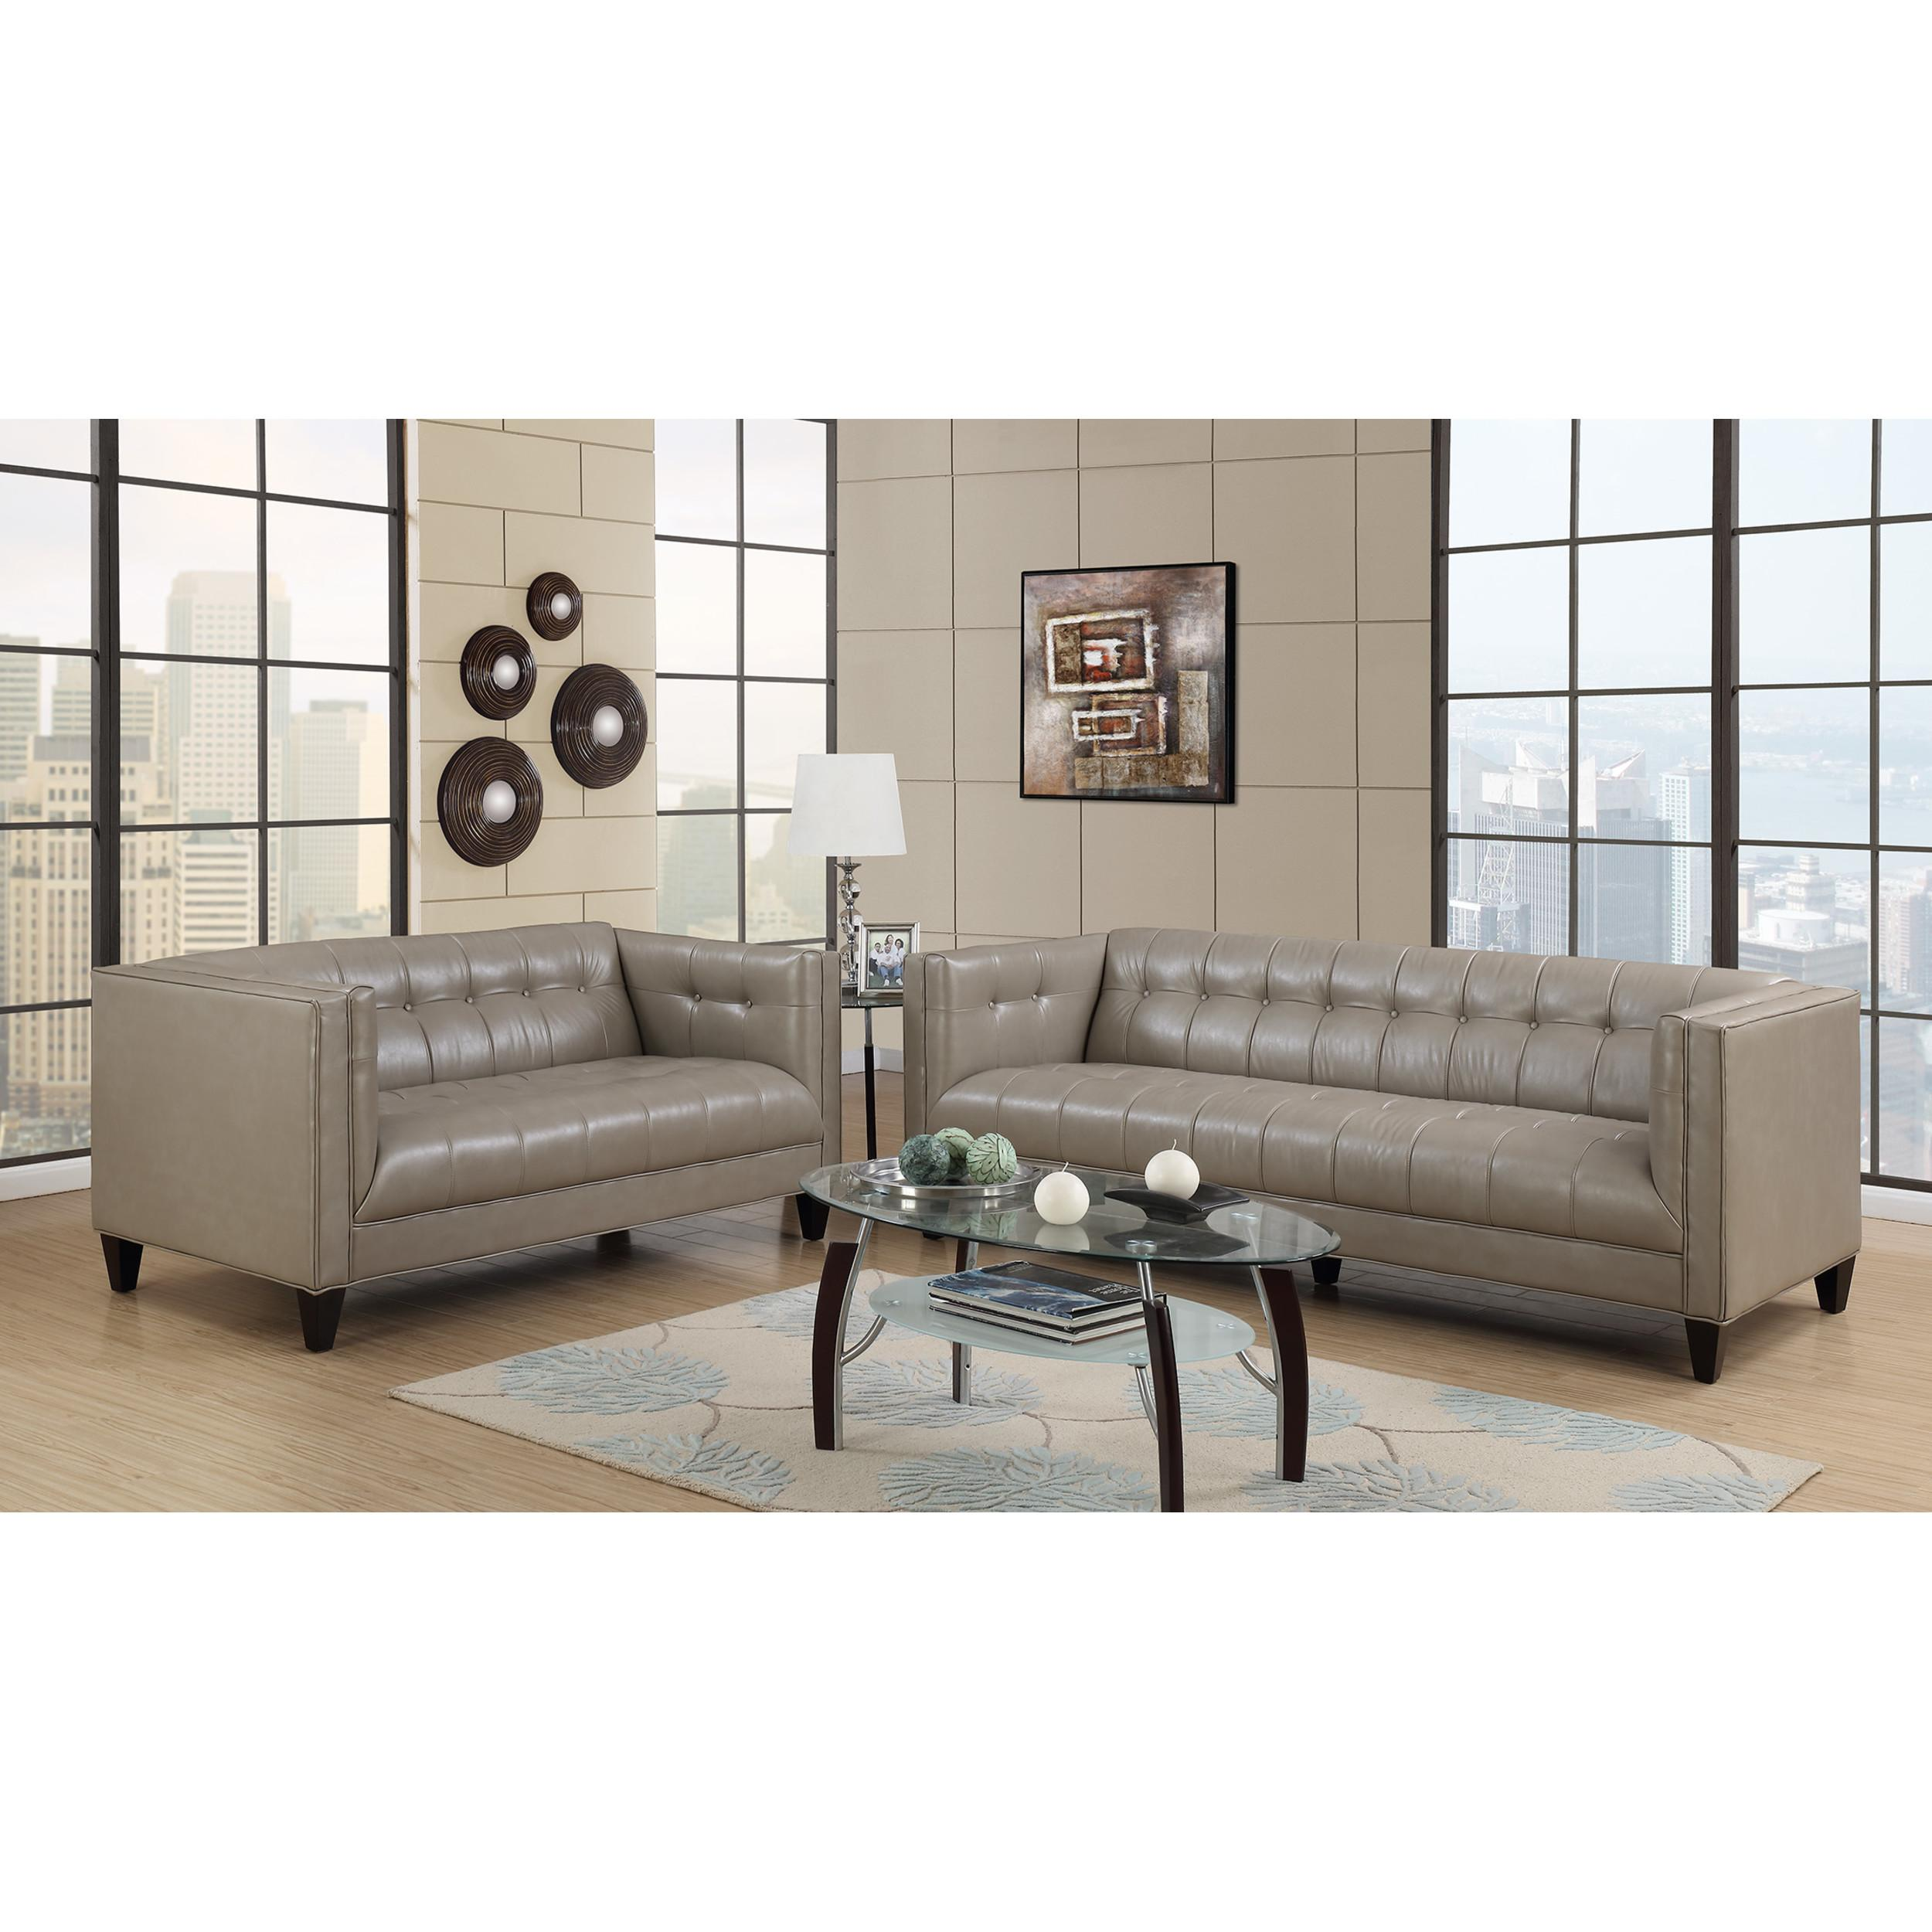 Emerald Home Nicolet Taupe Faux Leather 2pc Living Room Set